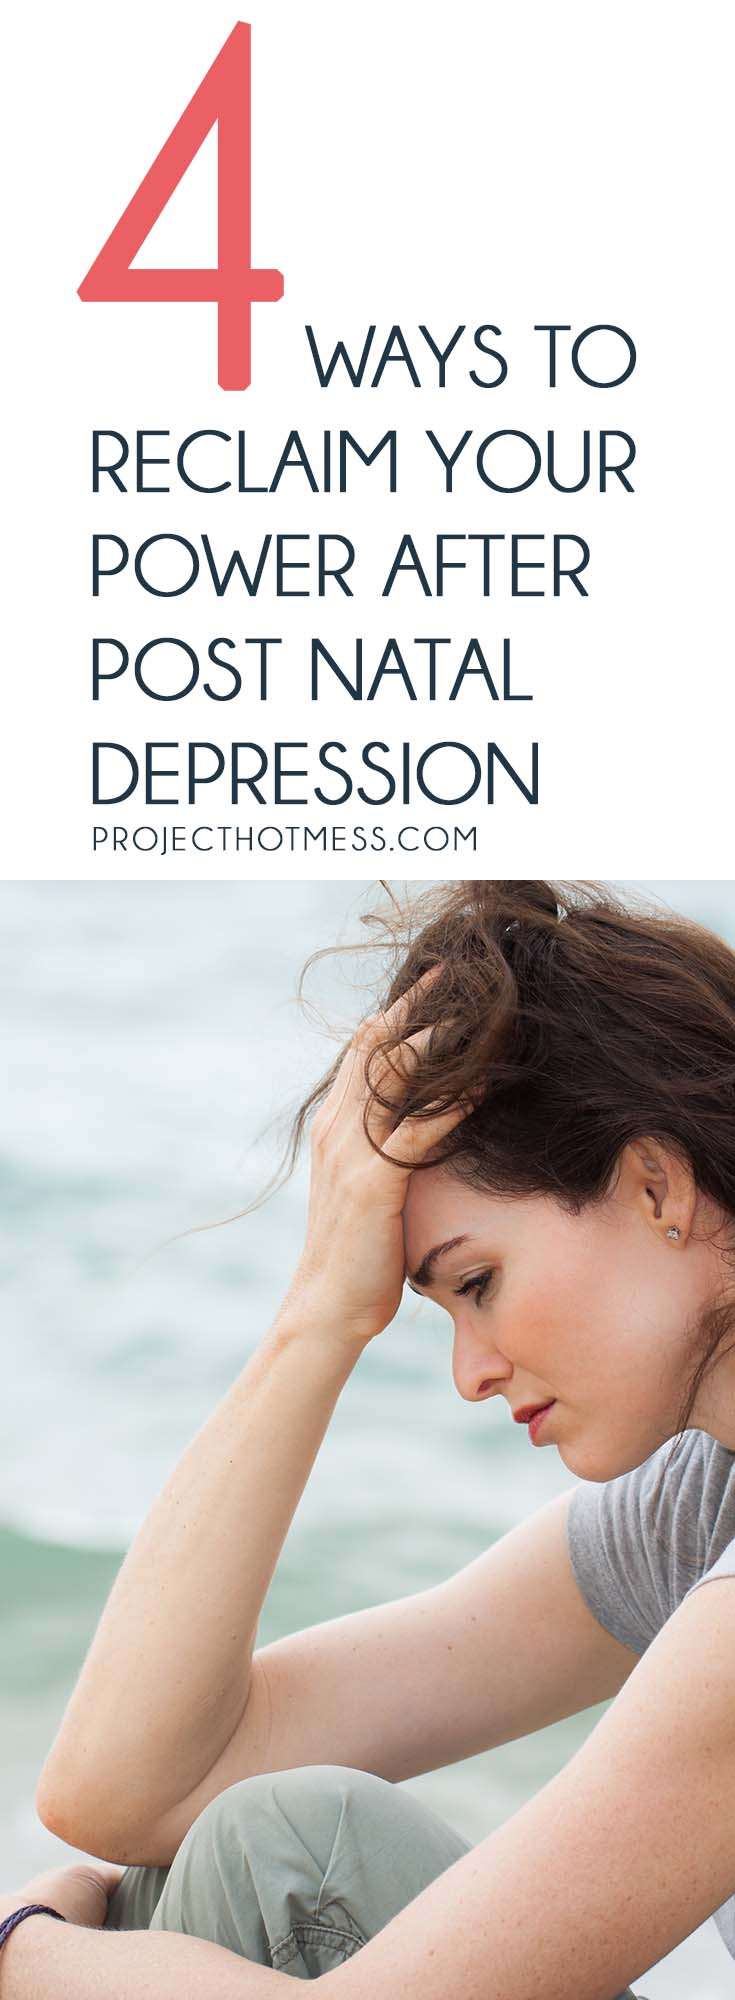 There is life after post natal depression, and as difficult as it is to imagine right now, you can reclaim your power. It's not easy, but it can be done.